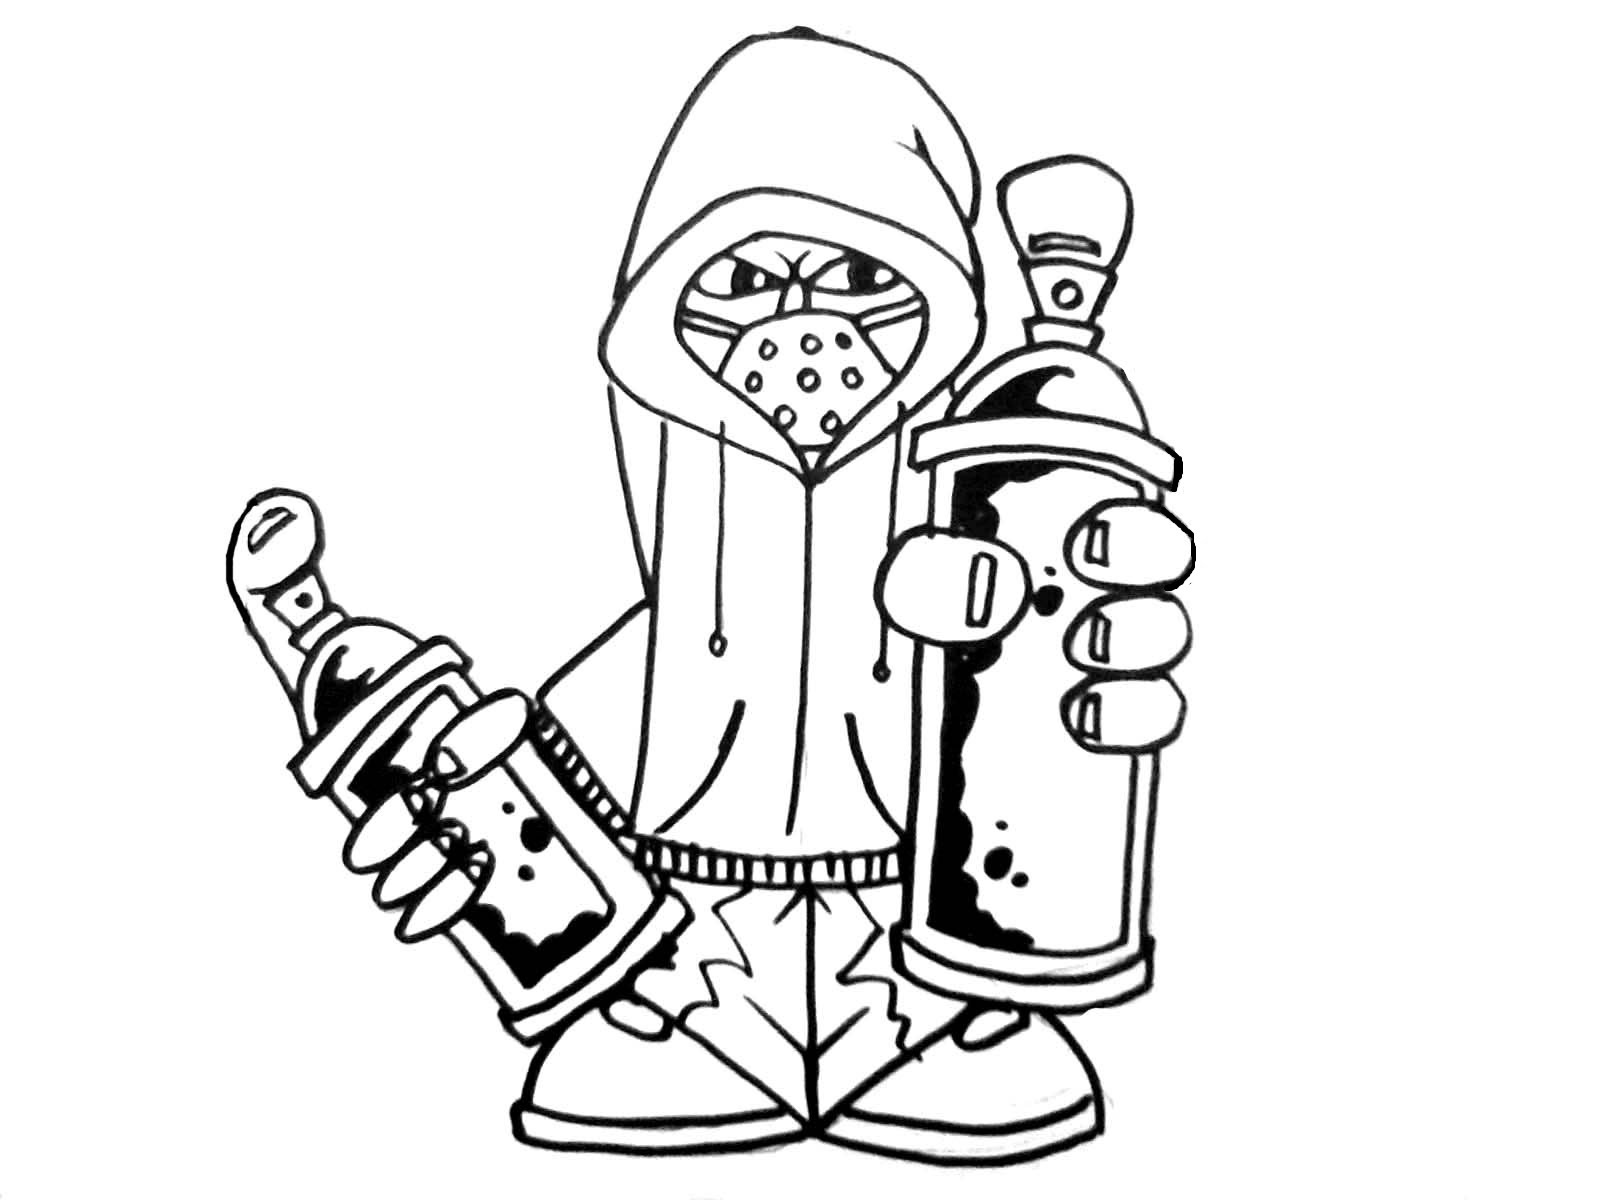 1600x1200 How To Draw Graffiti Characters Holding 2 Cans